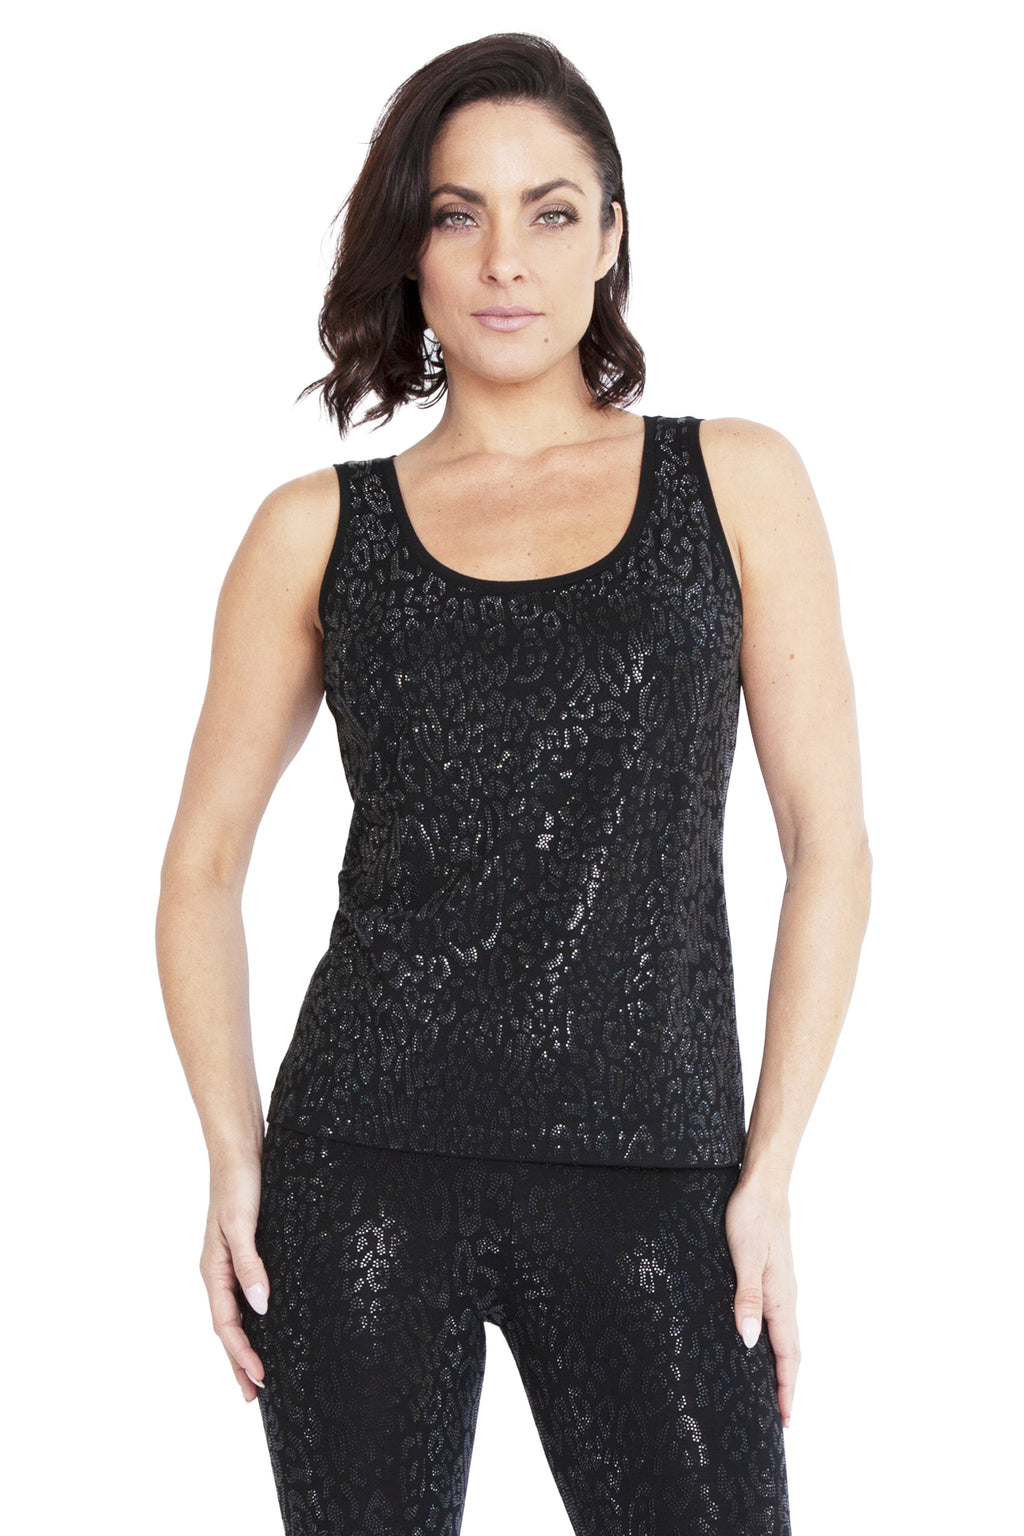 Cheetah Tigress Yoga Tank - W8500304